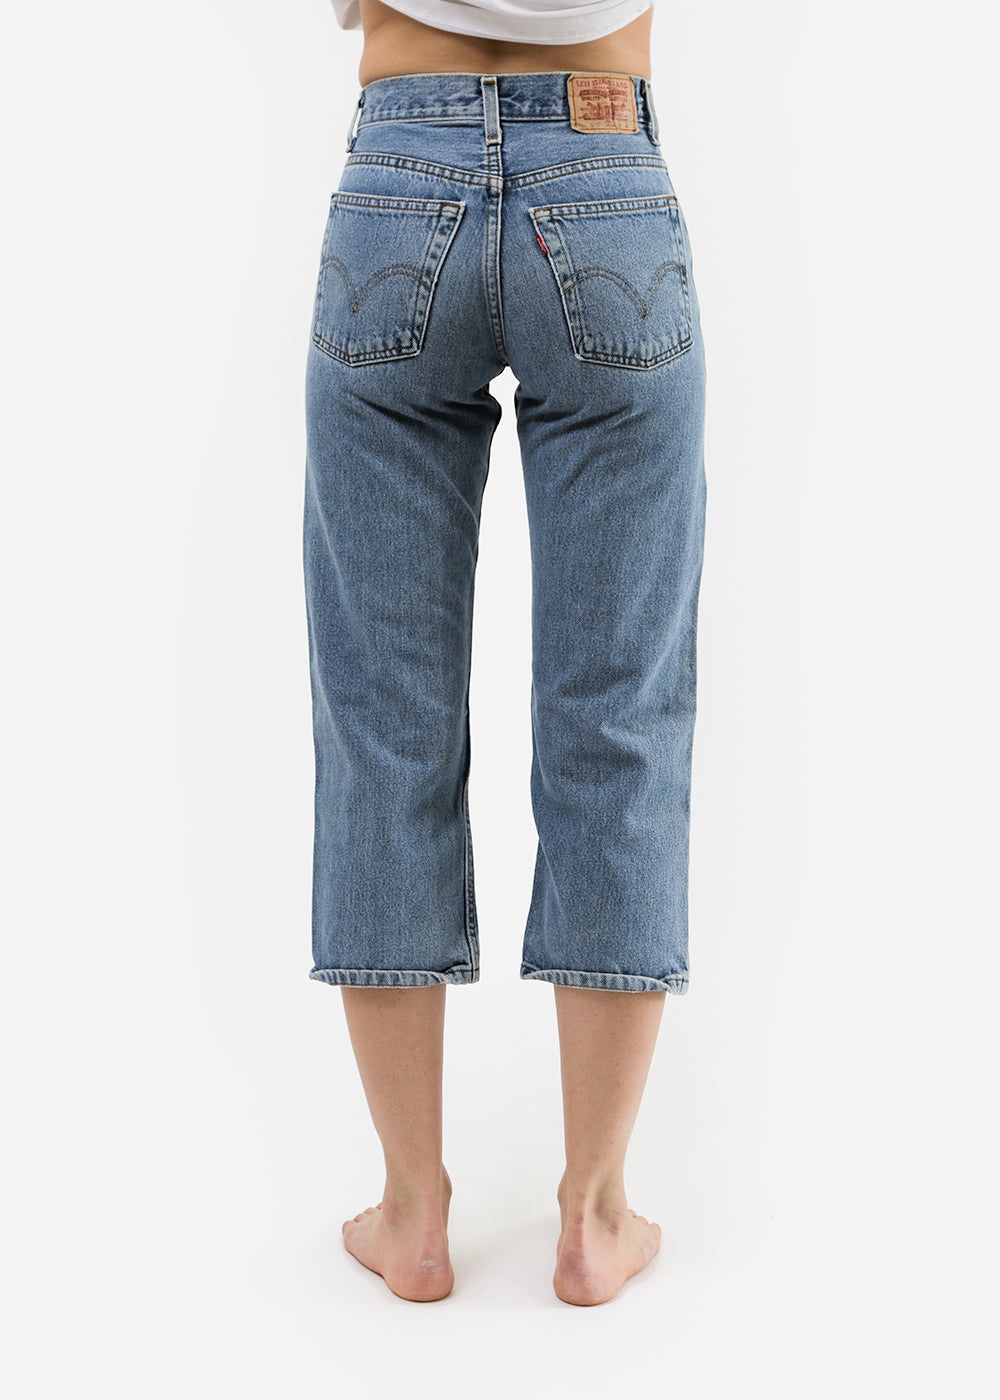 Denim Refinery Vintage Levi's 569 — Shop sustainable fashion and slow fashion at New Classics Studios